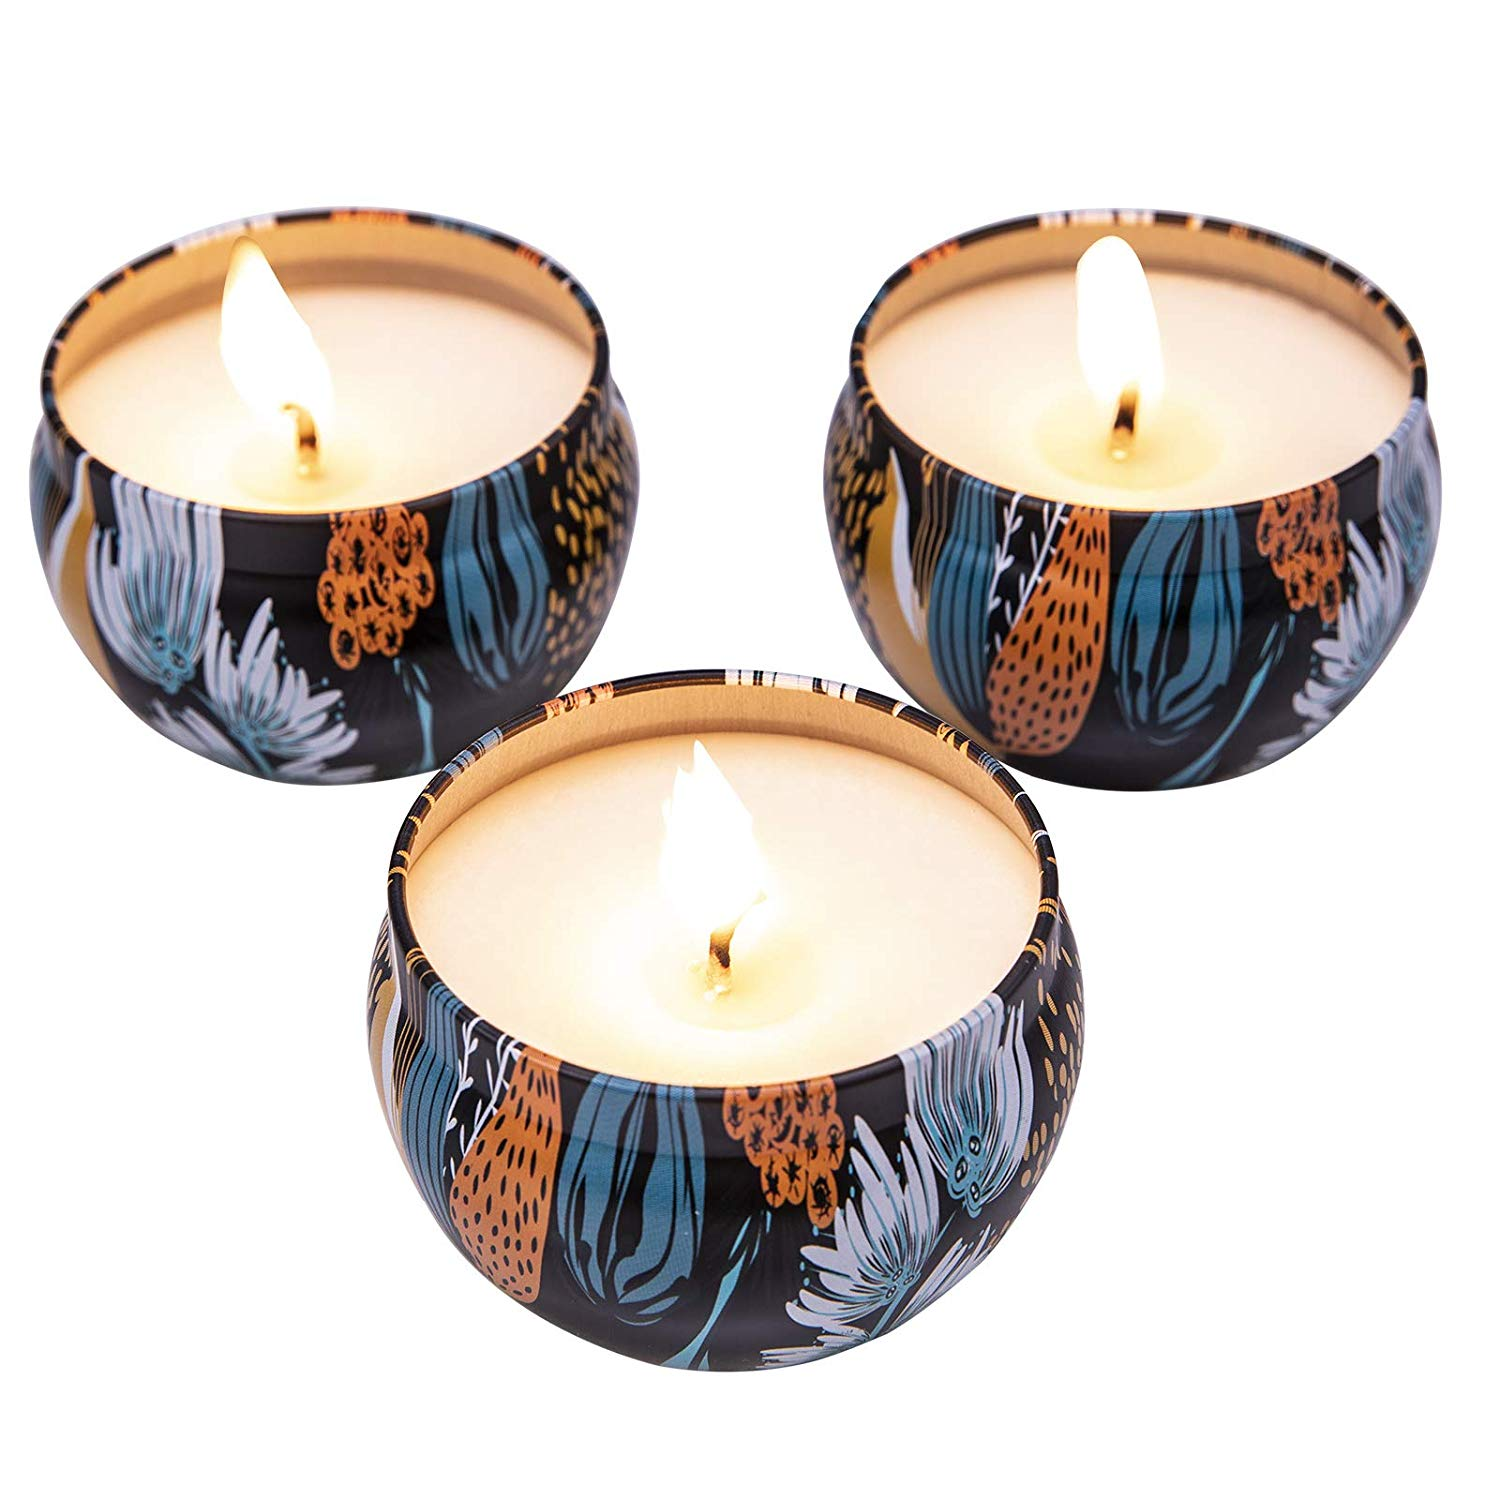 anniversary birthday romance valentine day special occasion candles in a jar flowery fragrance from Pakistan to UK